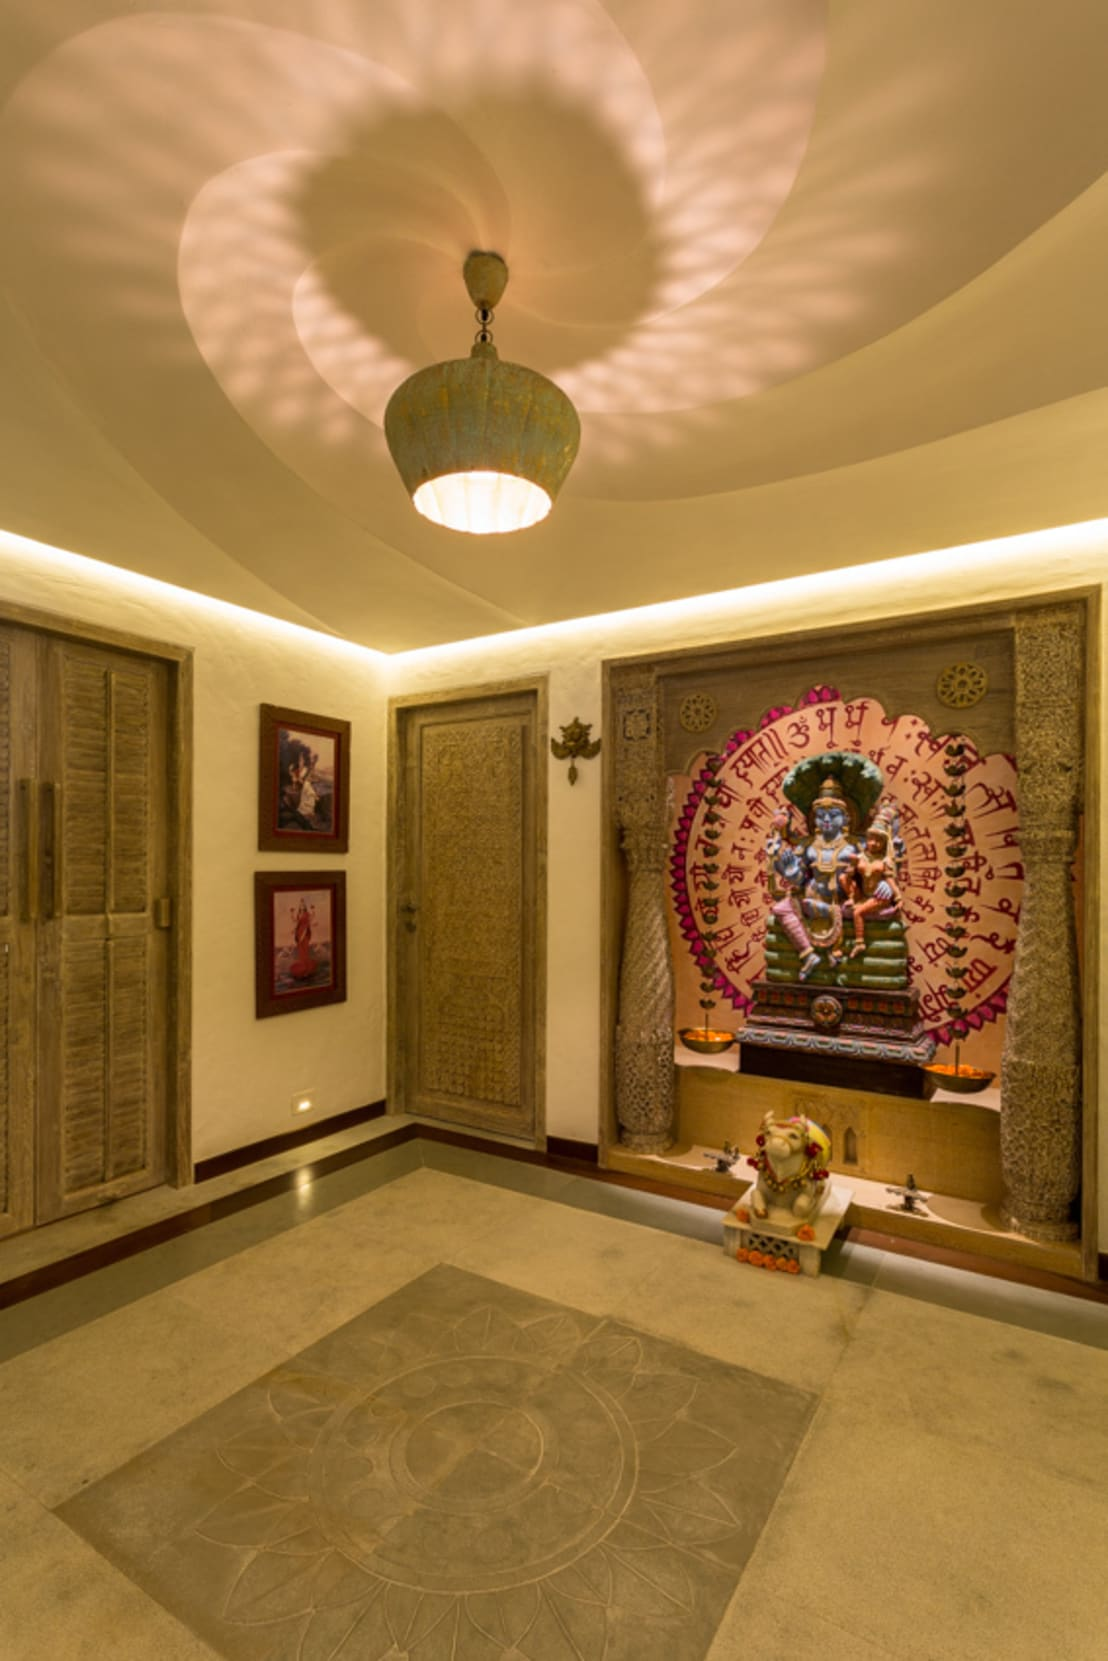 India Poojaroom Design 3d: 7 Sacred Pooja Room Designs For Your Home